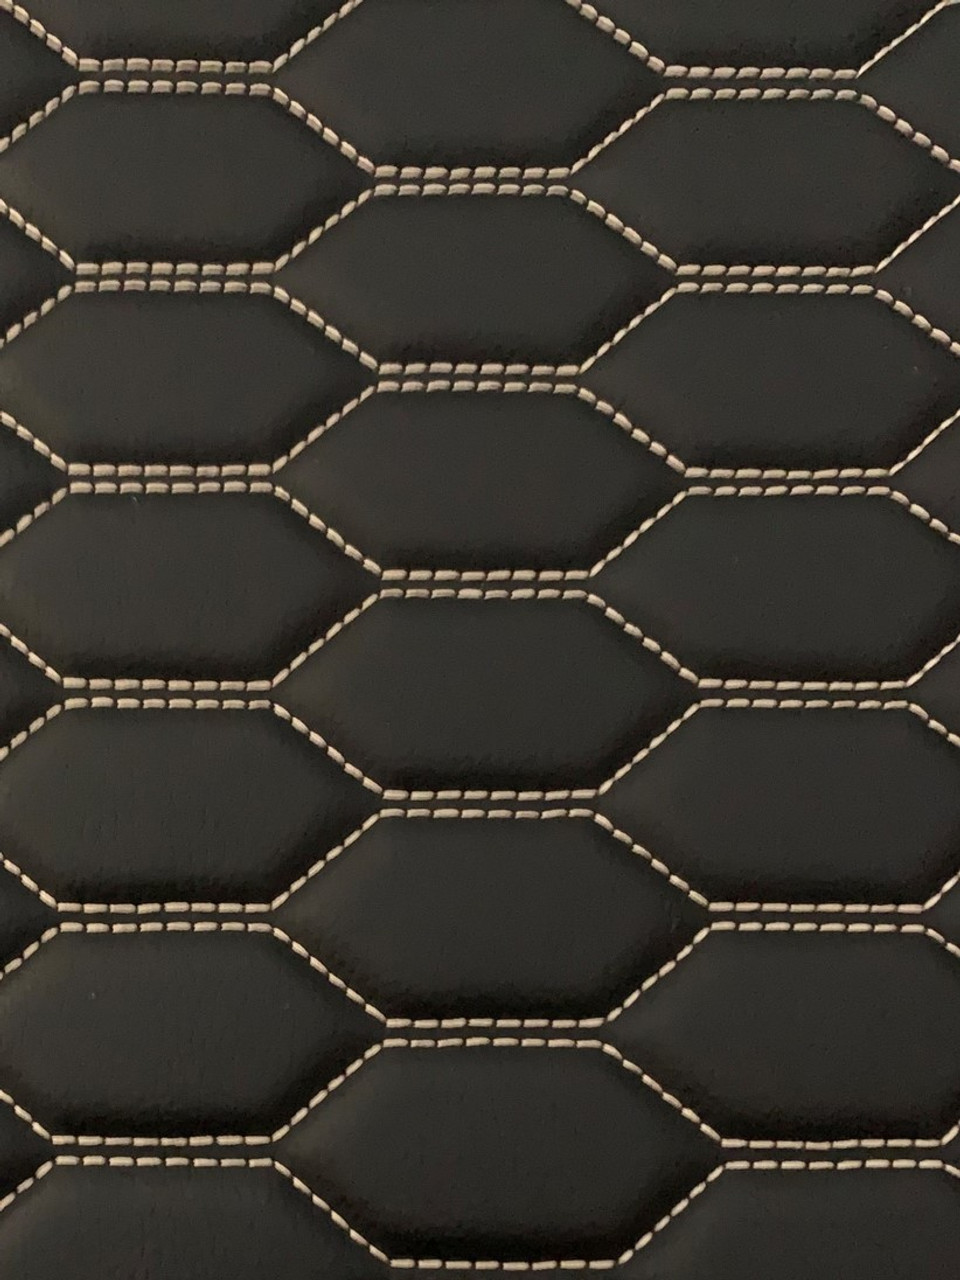 Quilted automotive grade black vinyl with white-gold stitching